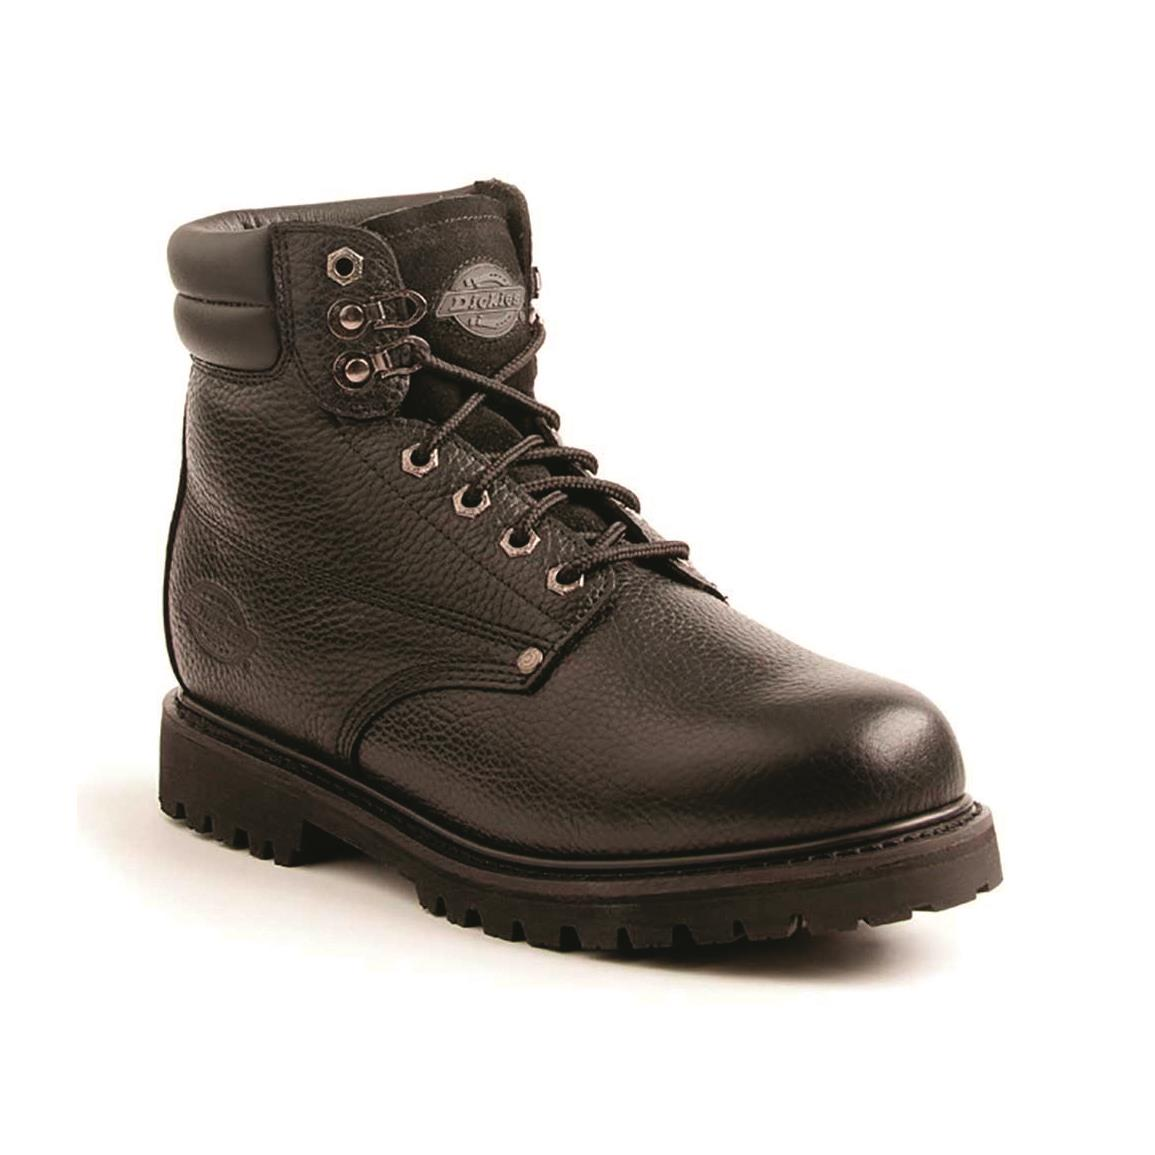 Dickies Men's Raider Steel Toe Work Boots, Black